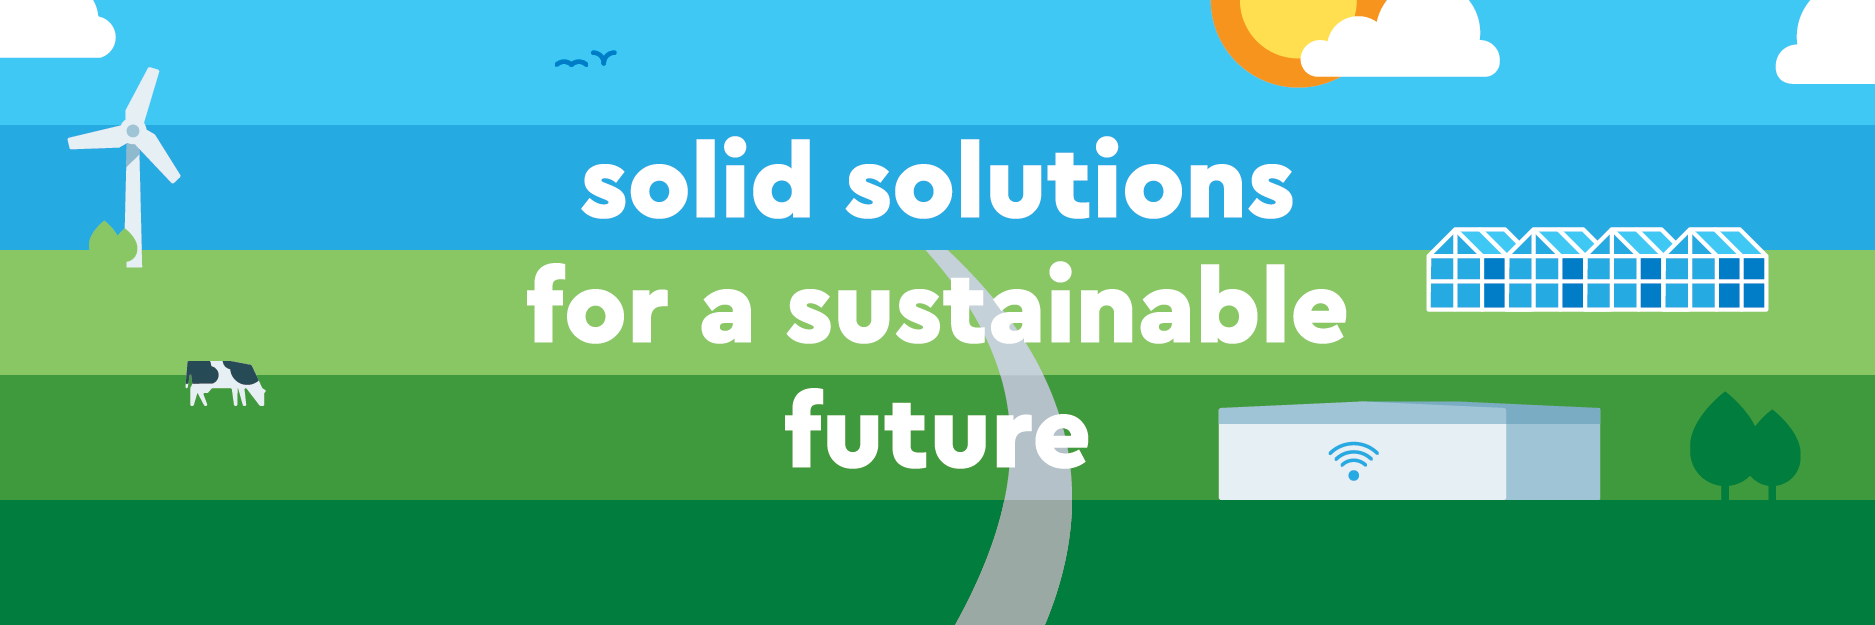 ECW Energy - Solid solutions for a sustainable future